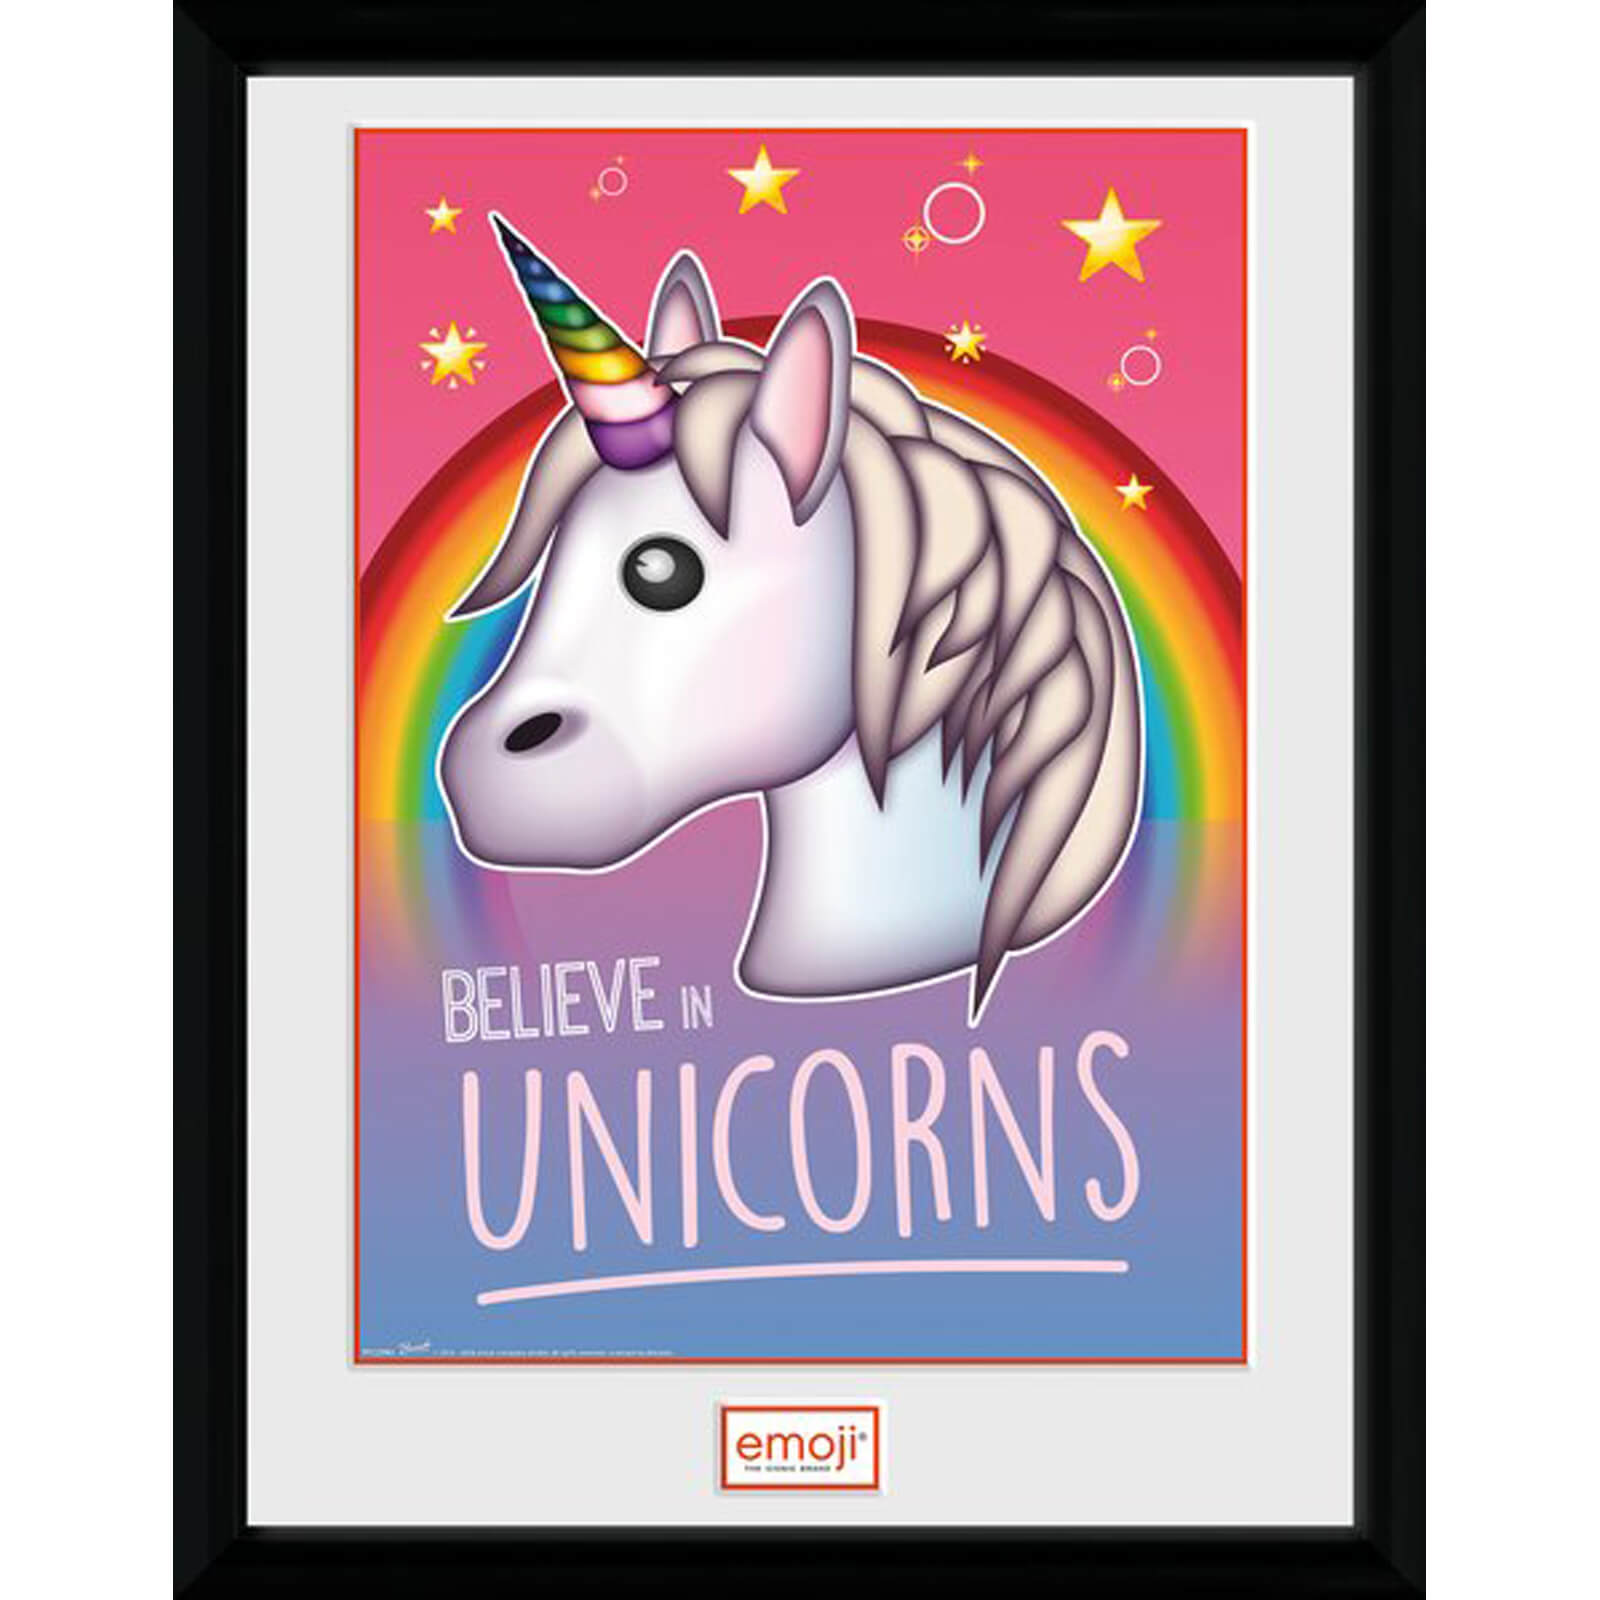 Emoji Believe in Unicorns 12 x 16 Inches Framed Photograph